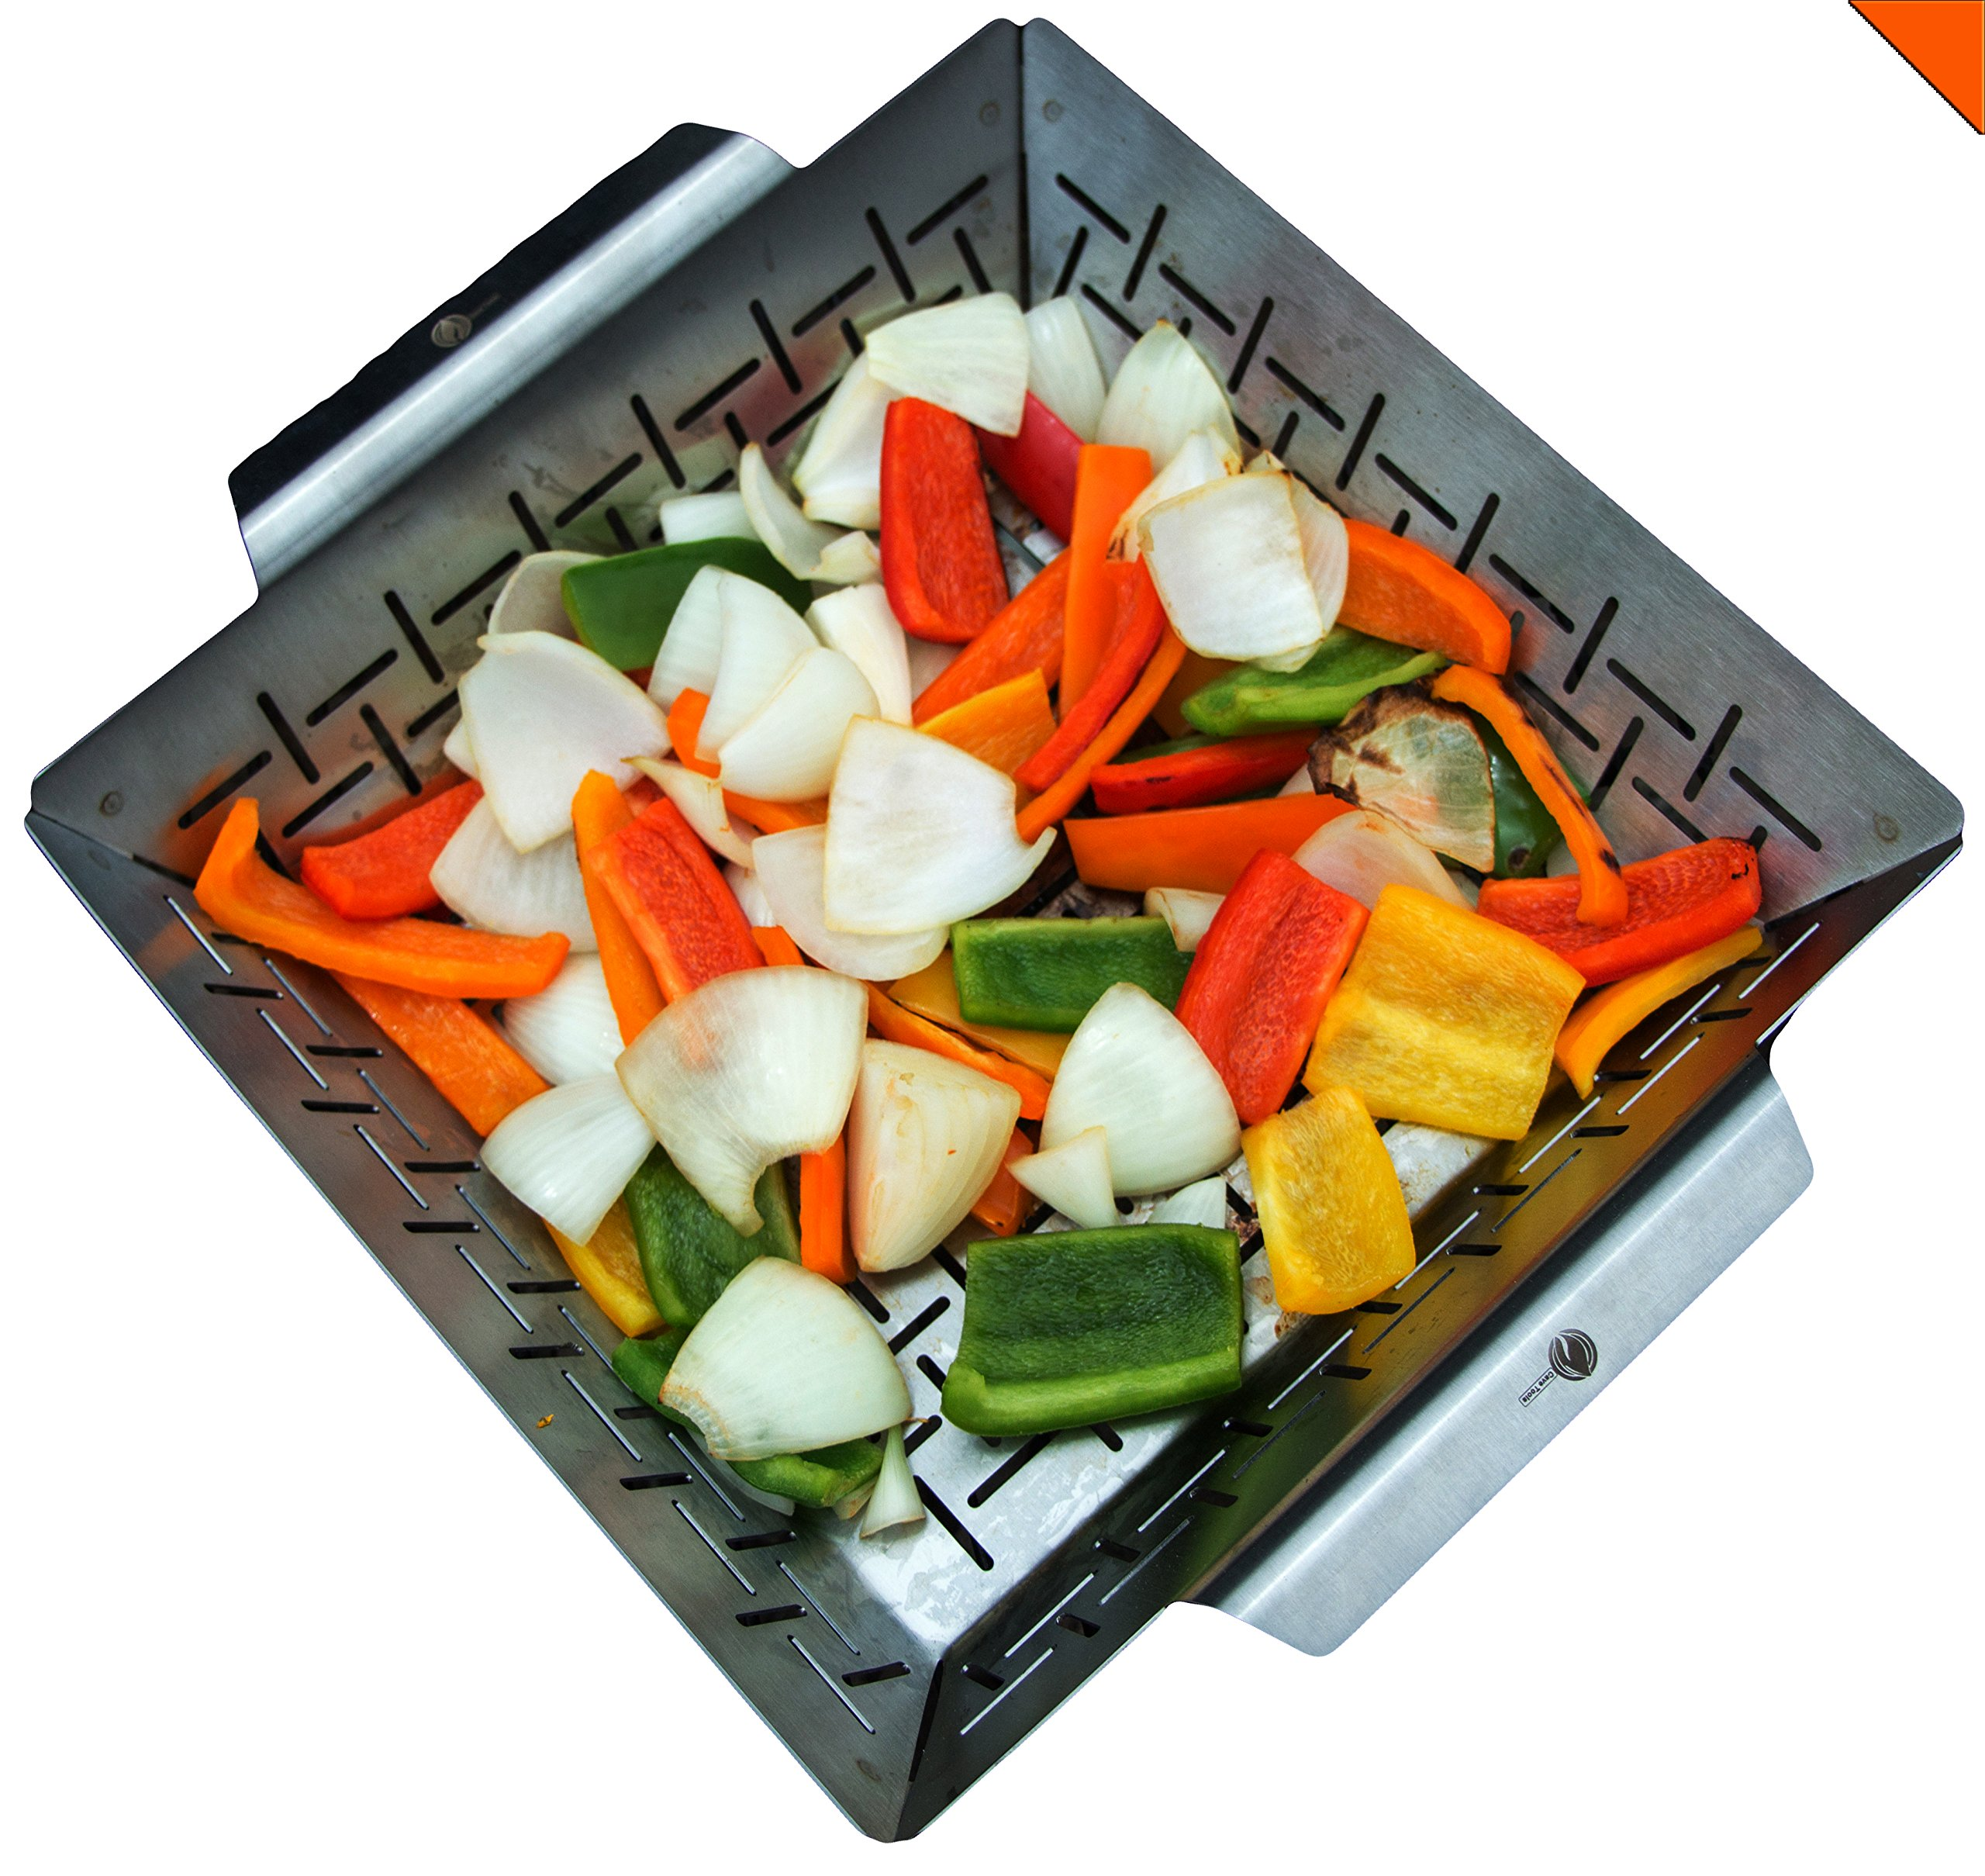 Cave Tools Vegetable Grill Basket - DISHWASHER SAFE STAINLESS STEEL - Large Non Stick BBQ Grid Pan For Veggies Meat Fish Shrimp & Fruit - Best Barbecue Wok Topper Accessories Gift for Dad